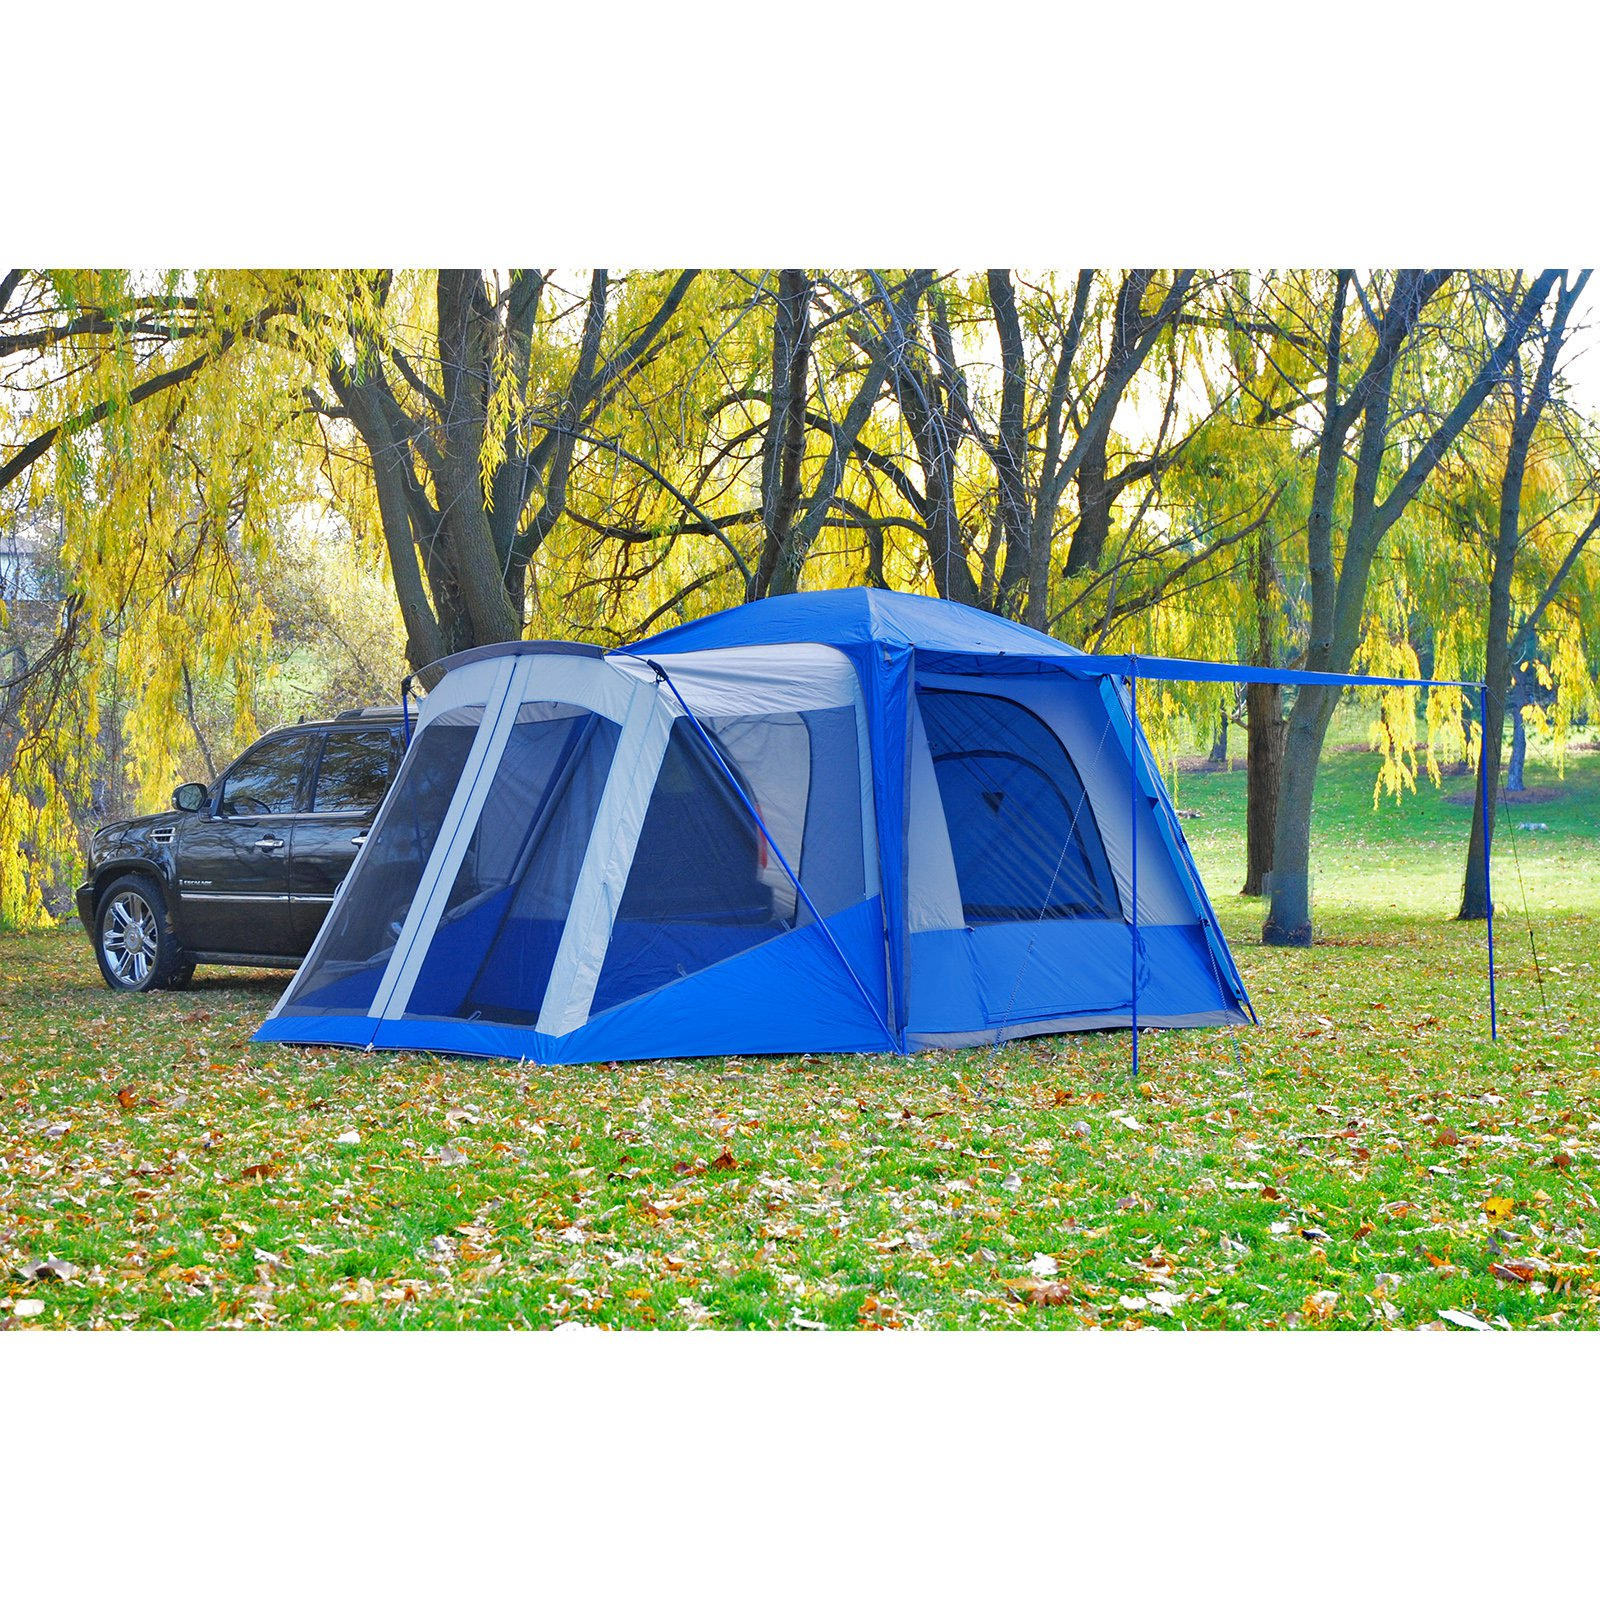 Napier Outdoors Sportz #84000 5 Person SUV Tent with Screen Room